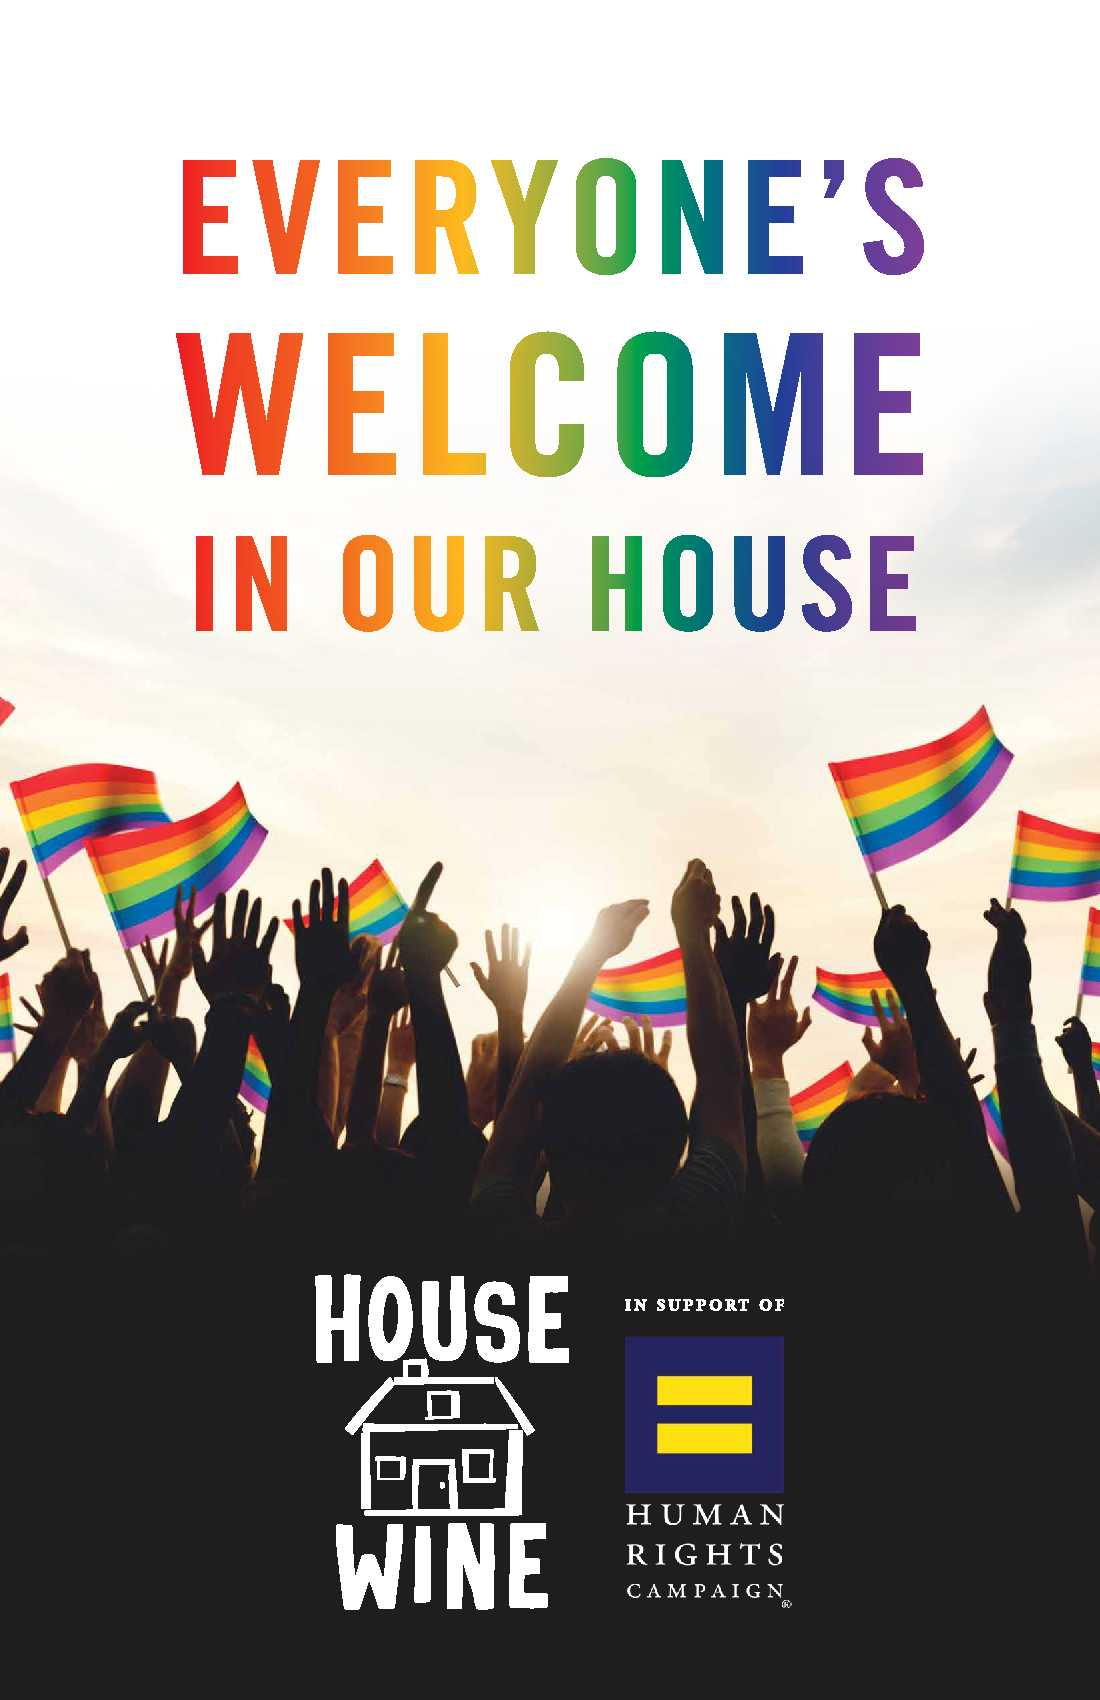 Everyone's welcome in our house poster